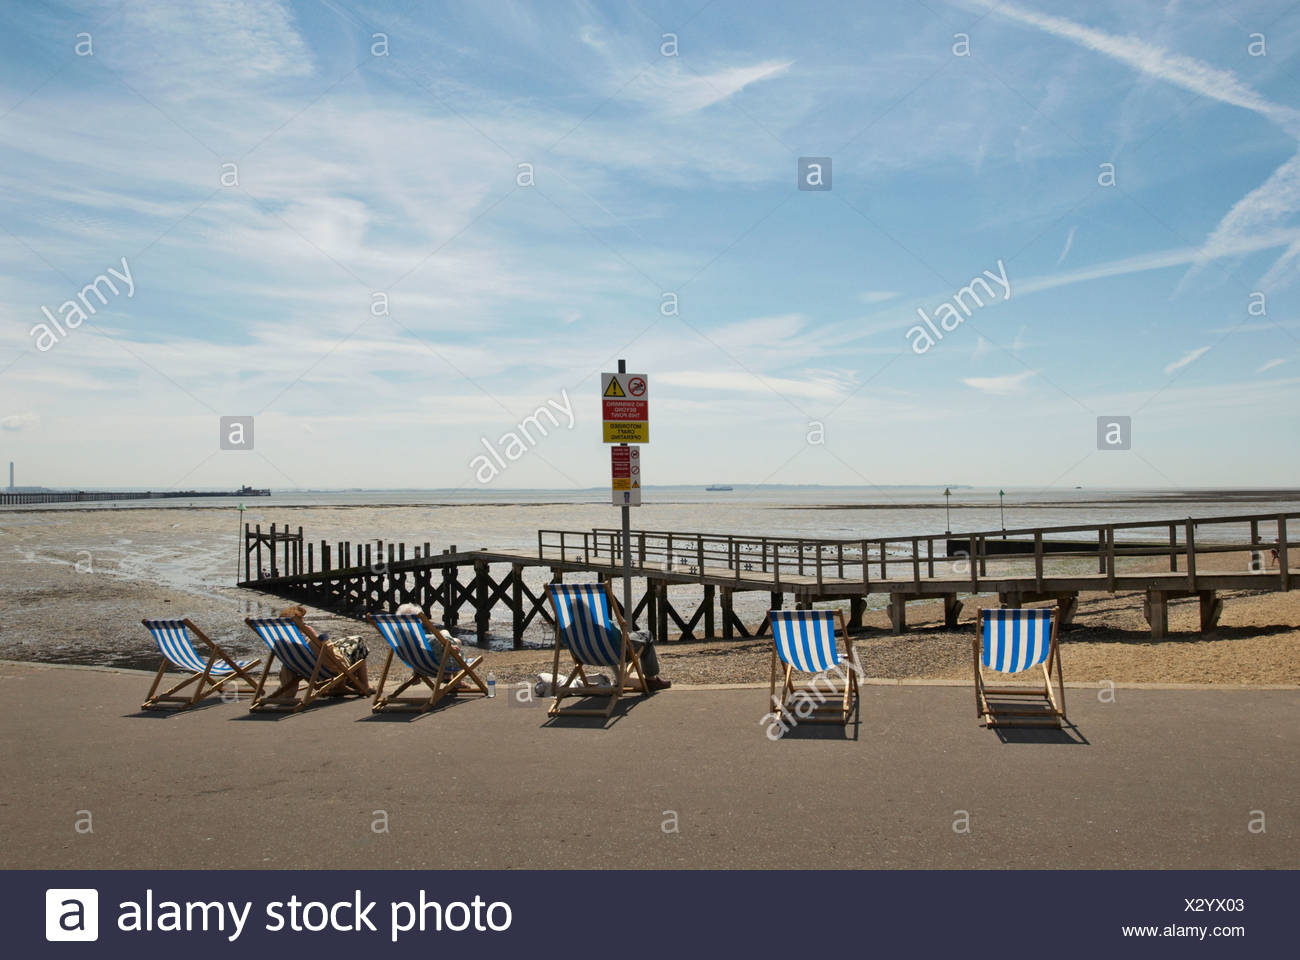 Deckchairs and seafront Southend-on-Sea Essex UK - Stock Image